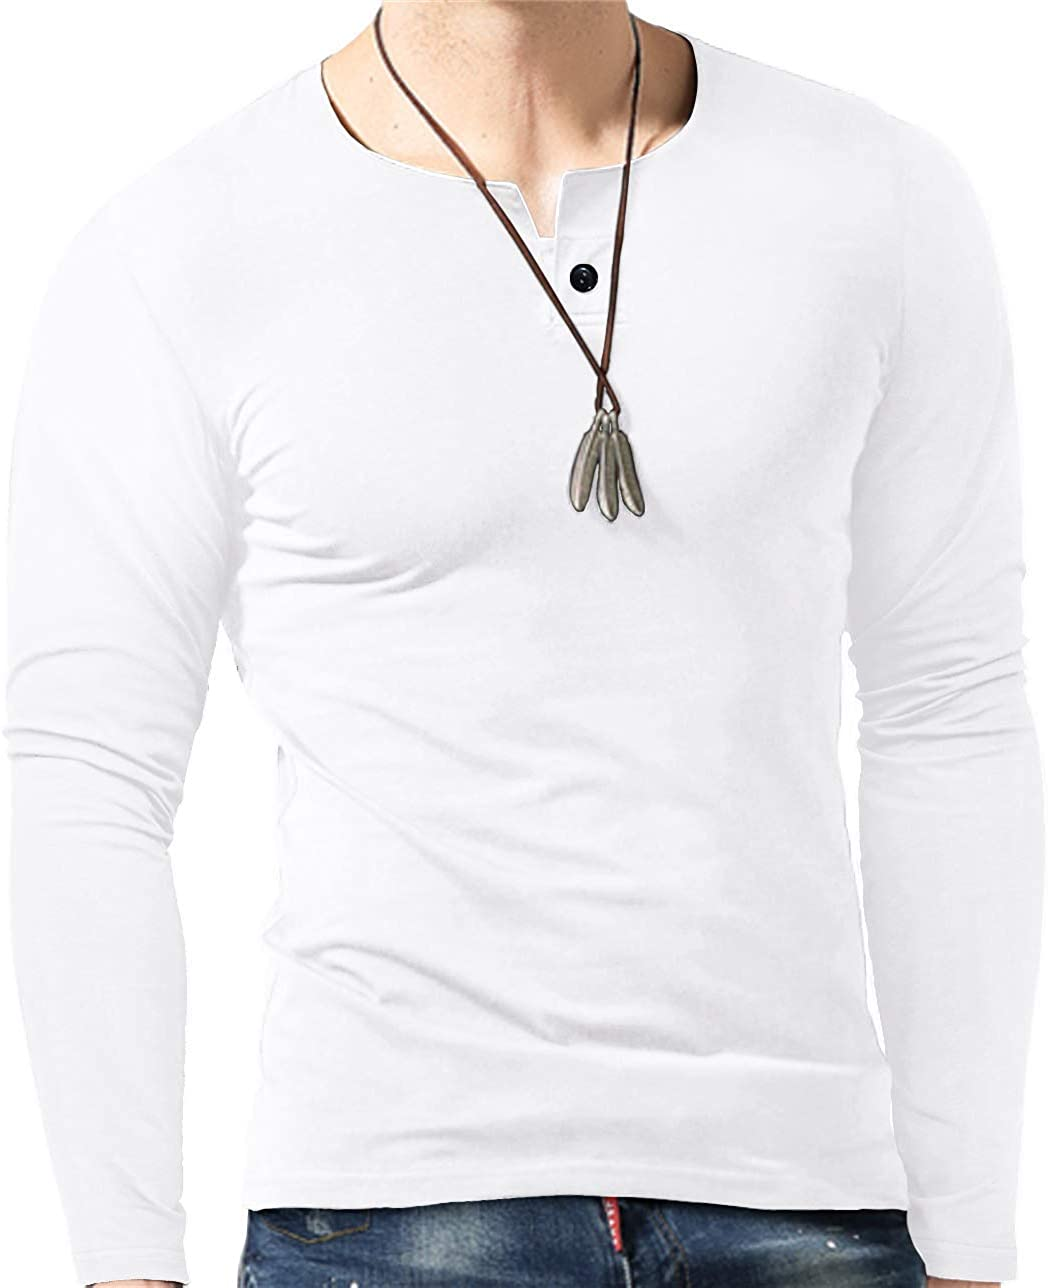 BblyThe Mens Fashion Casual Slim Fit Basic Henley Solid Color Long Sleeve Lightweight T-Shirt